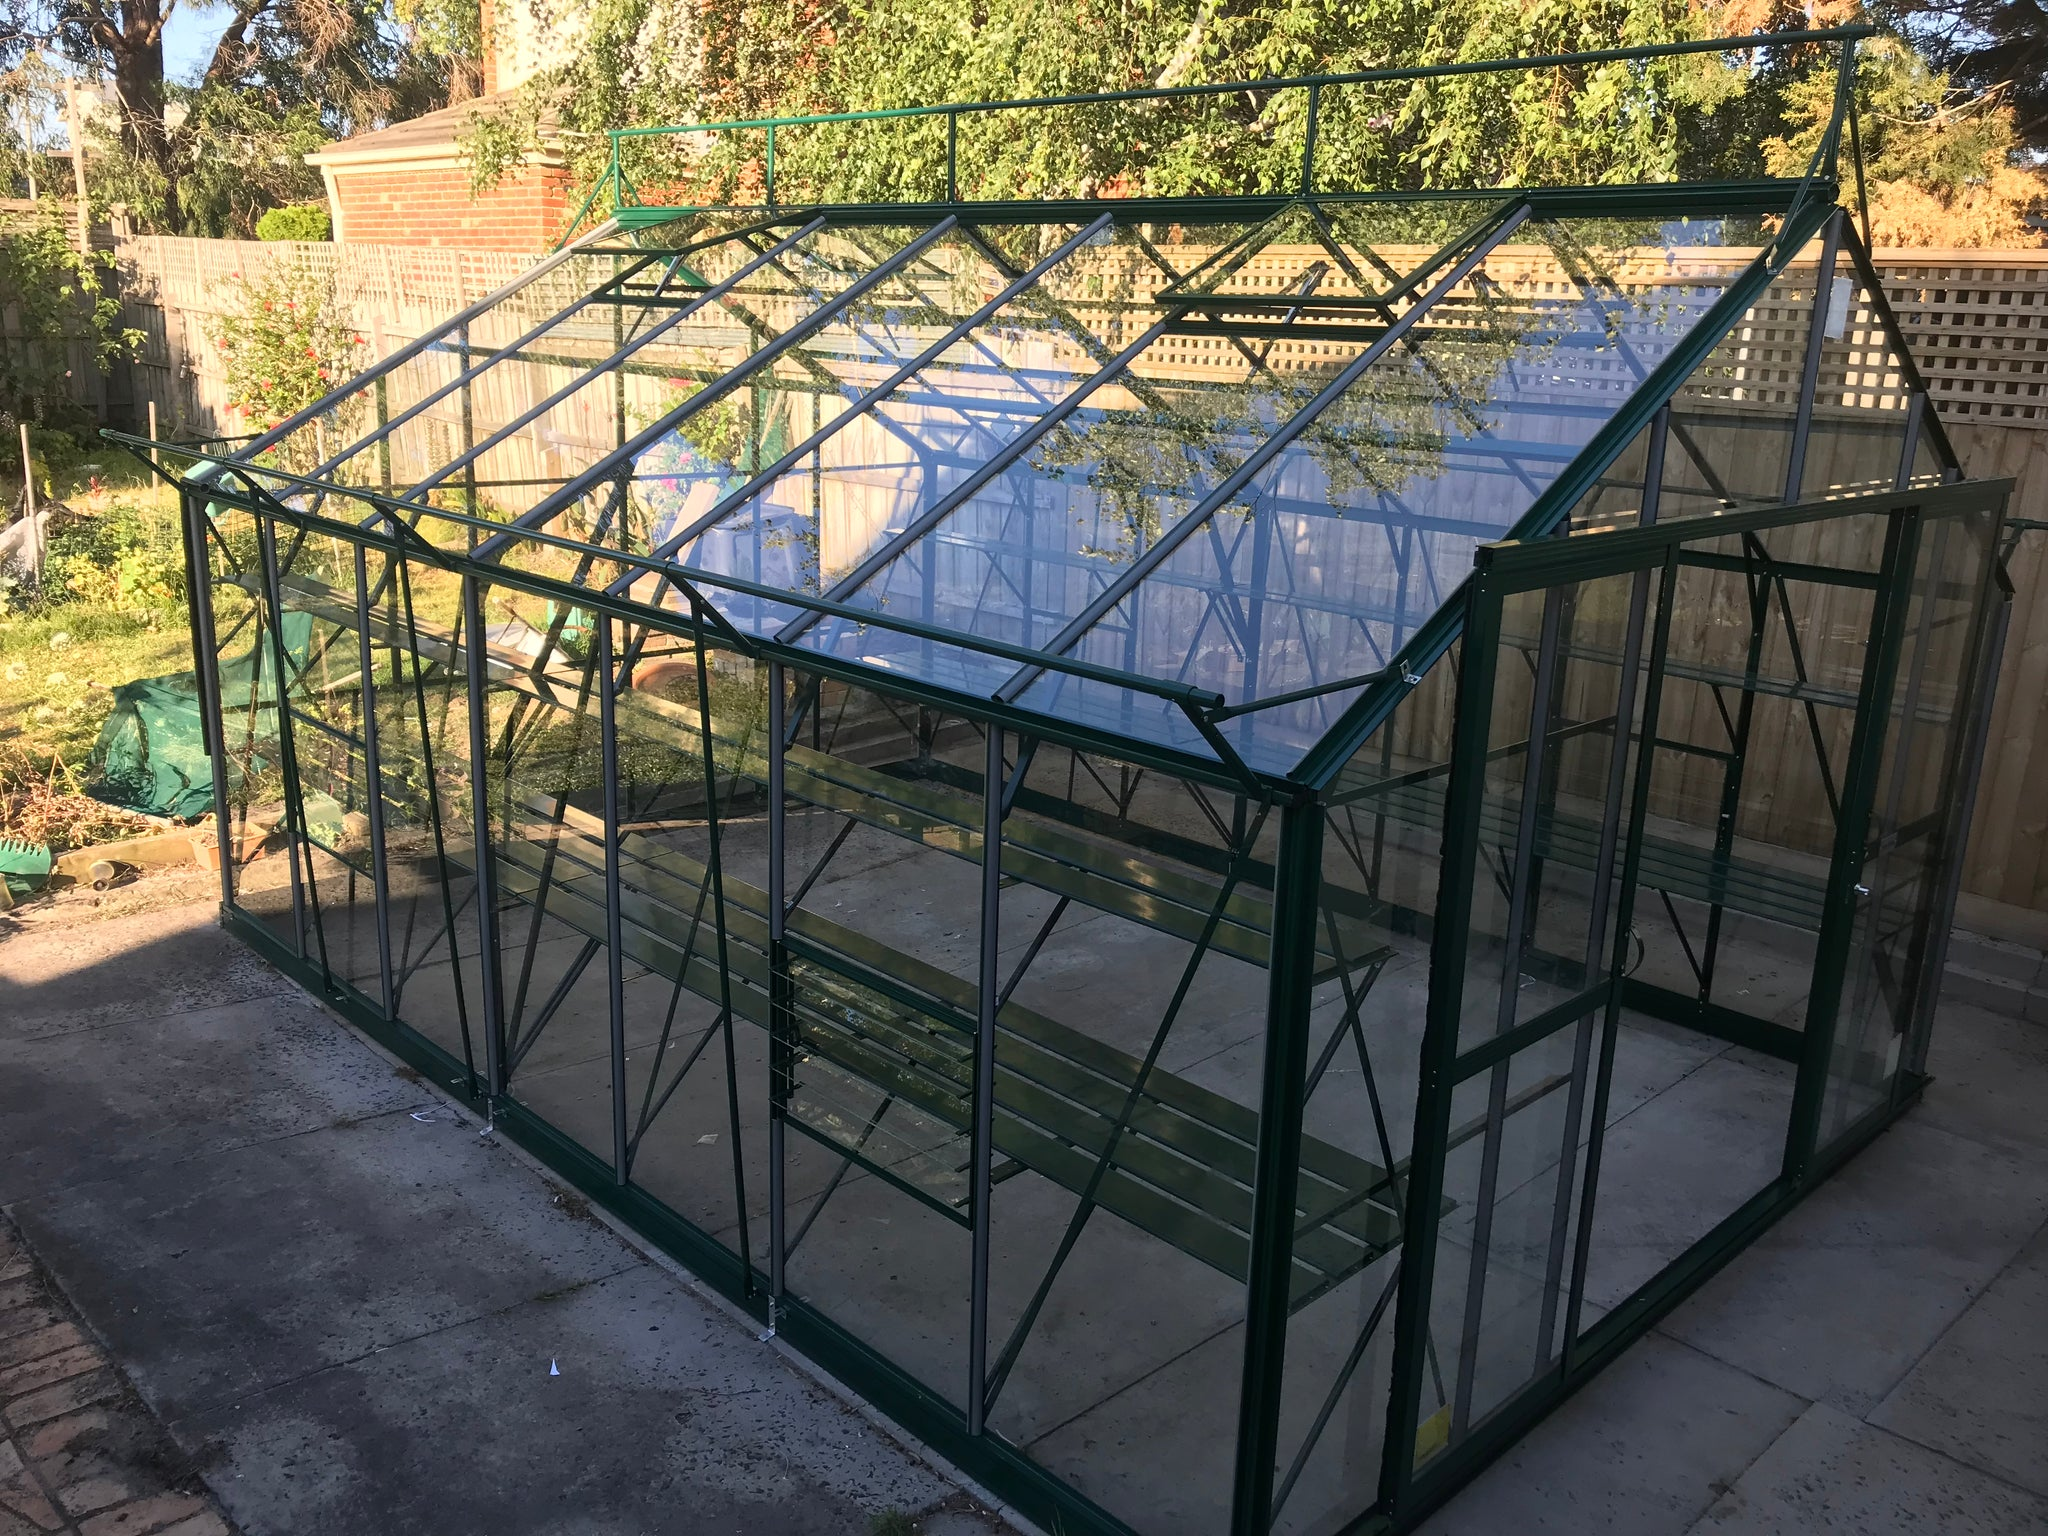 Windsor Royale 11600 Glasshouse- 11.6mLx3.7Wx2.8Hm (38.1x12.1x9.2ft)